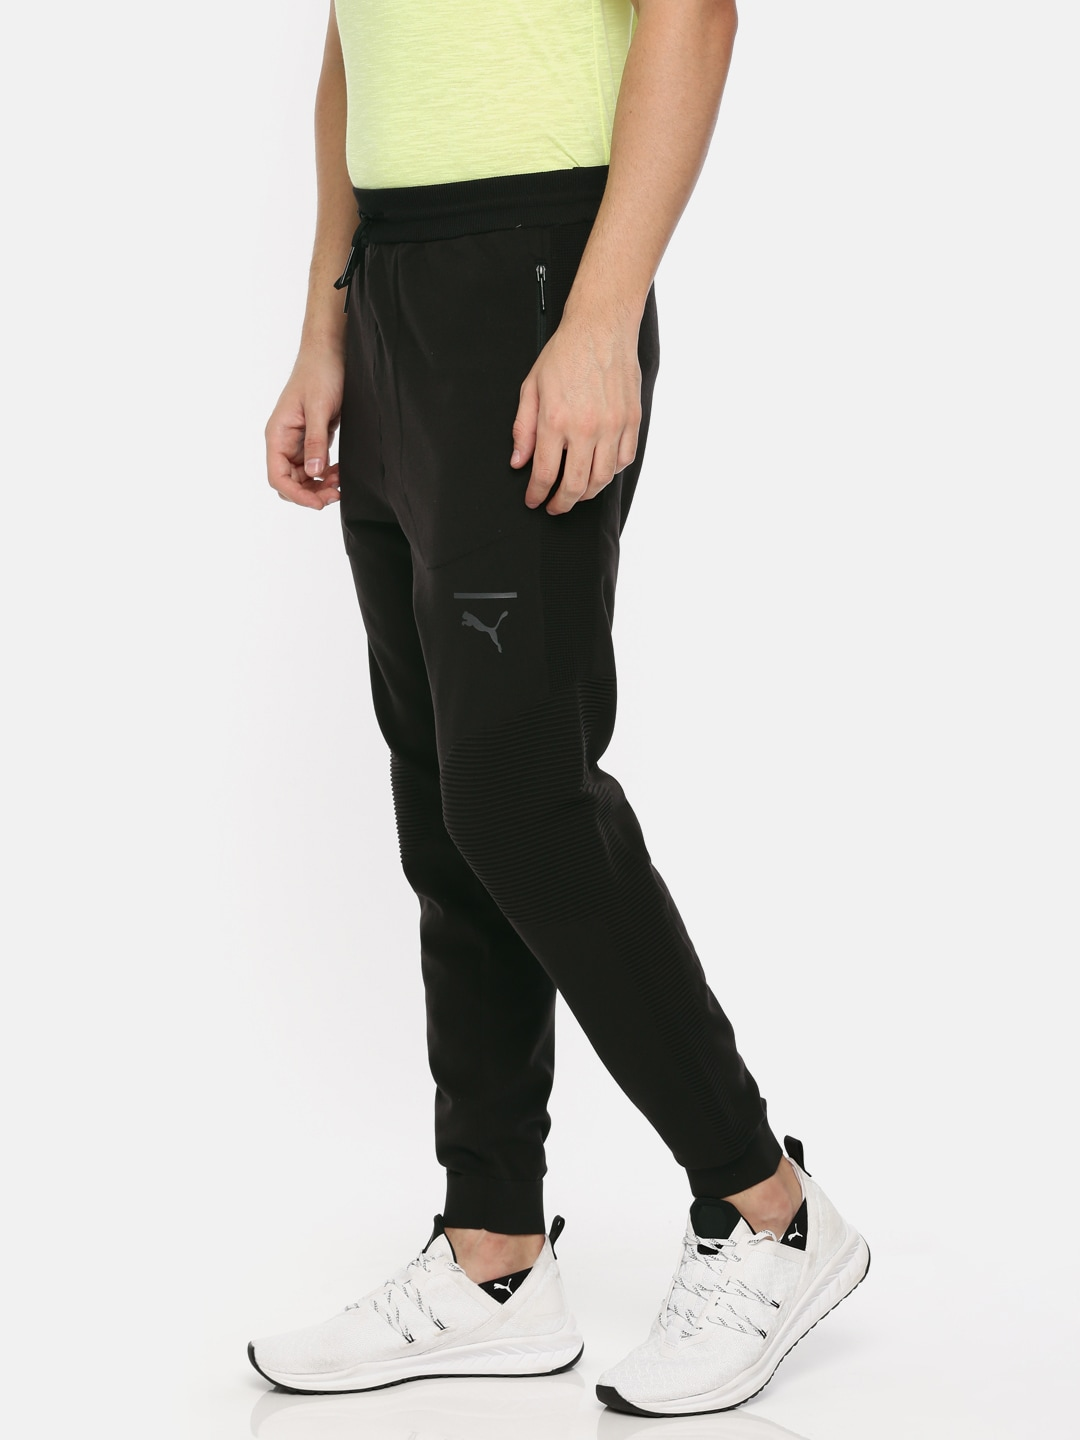 96152c278f55 Track Pants Pants Of Puma Hat Travel Accessory - Buy Track Pants Pants Of  Puma Hat Travel Accessory online in India